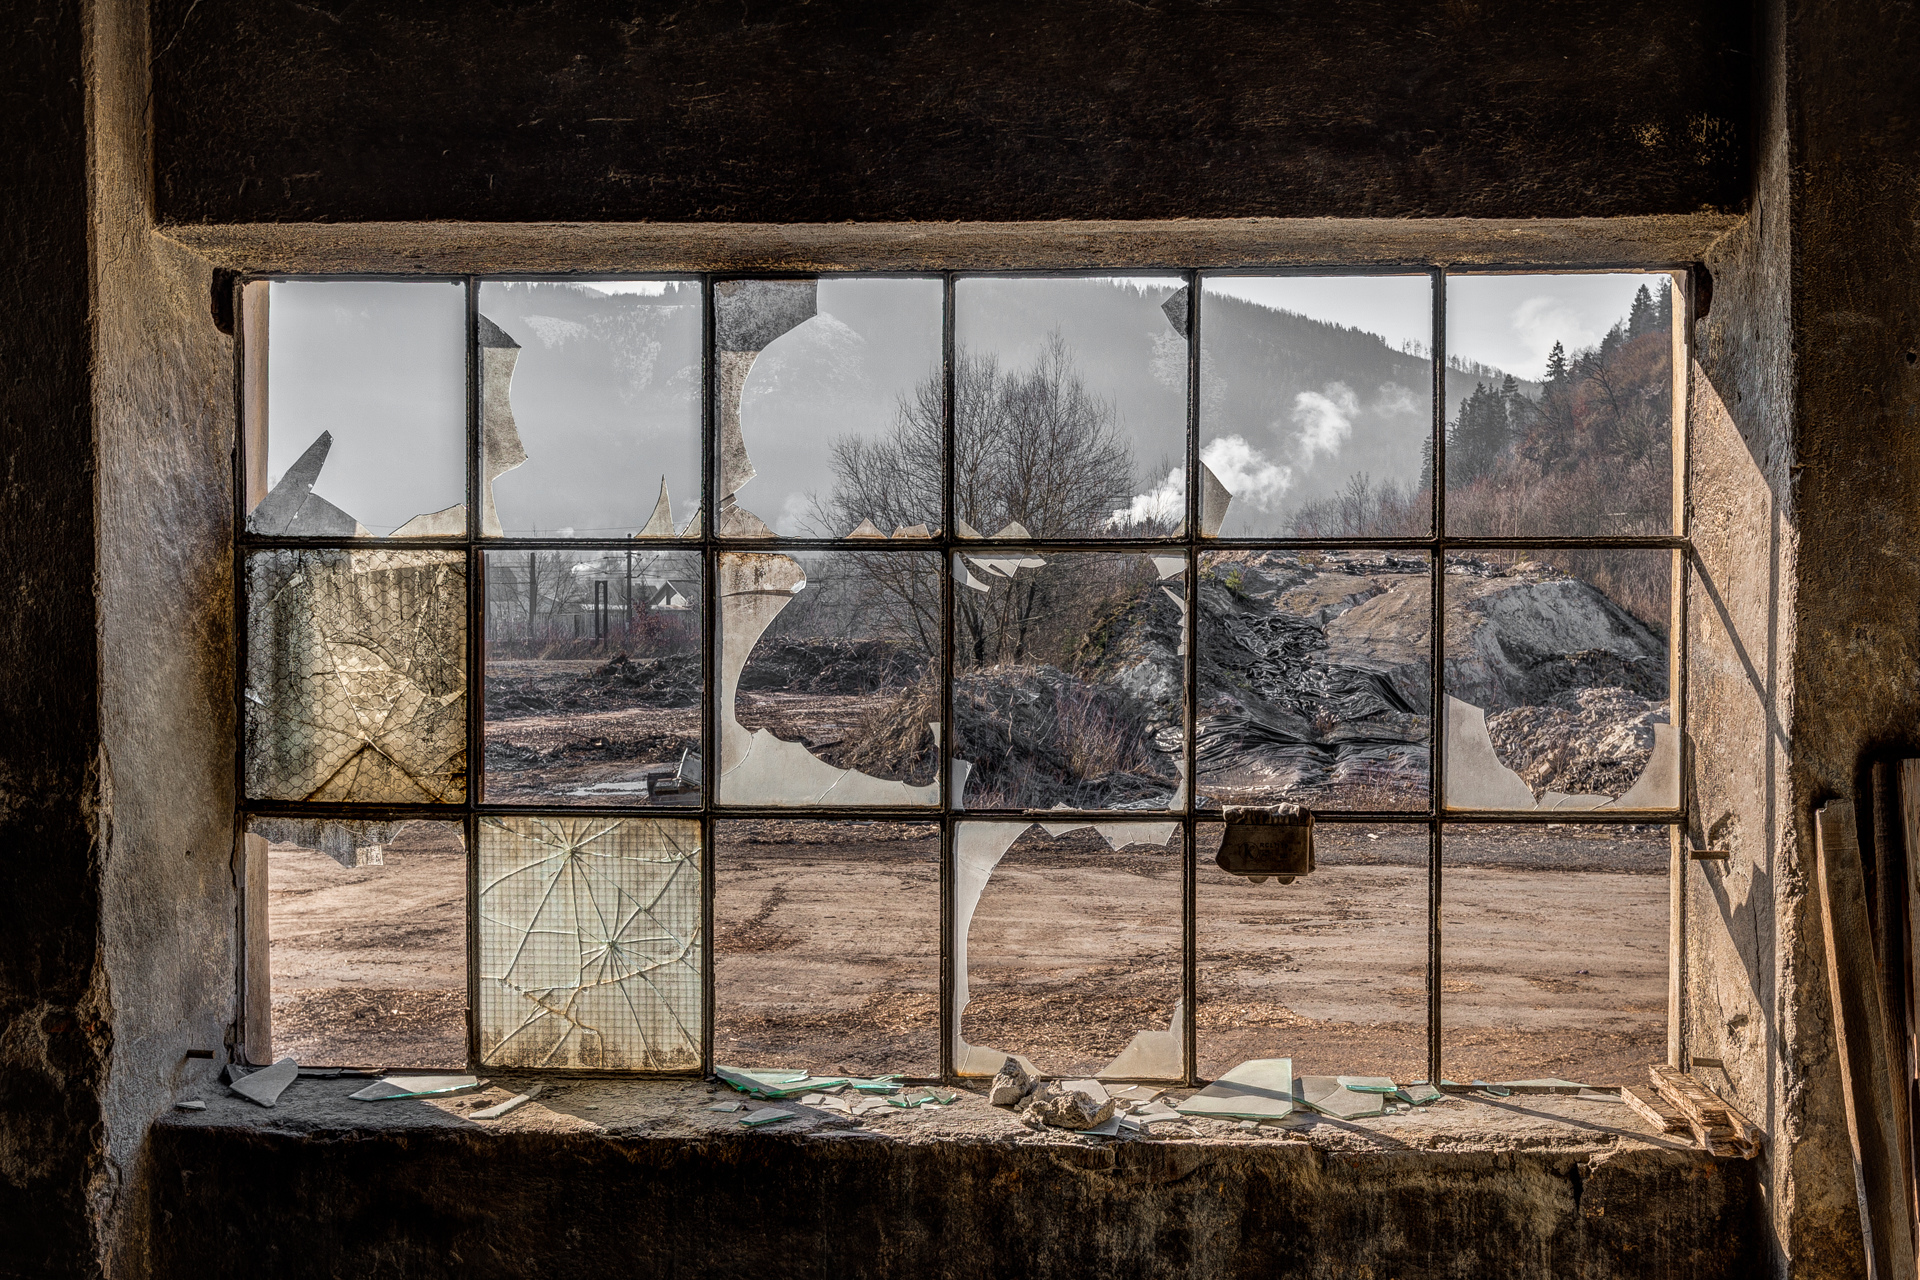 Urban Exploration - Furnace Factory - Desert Window